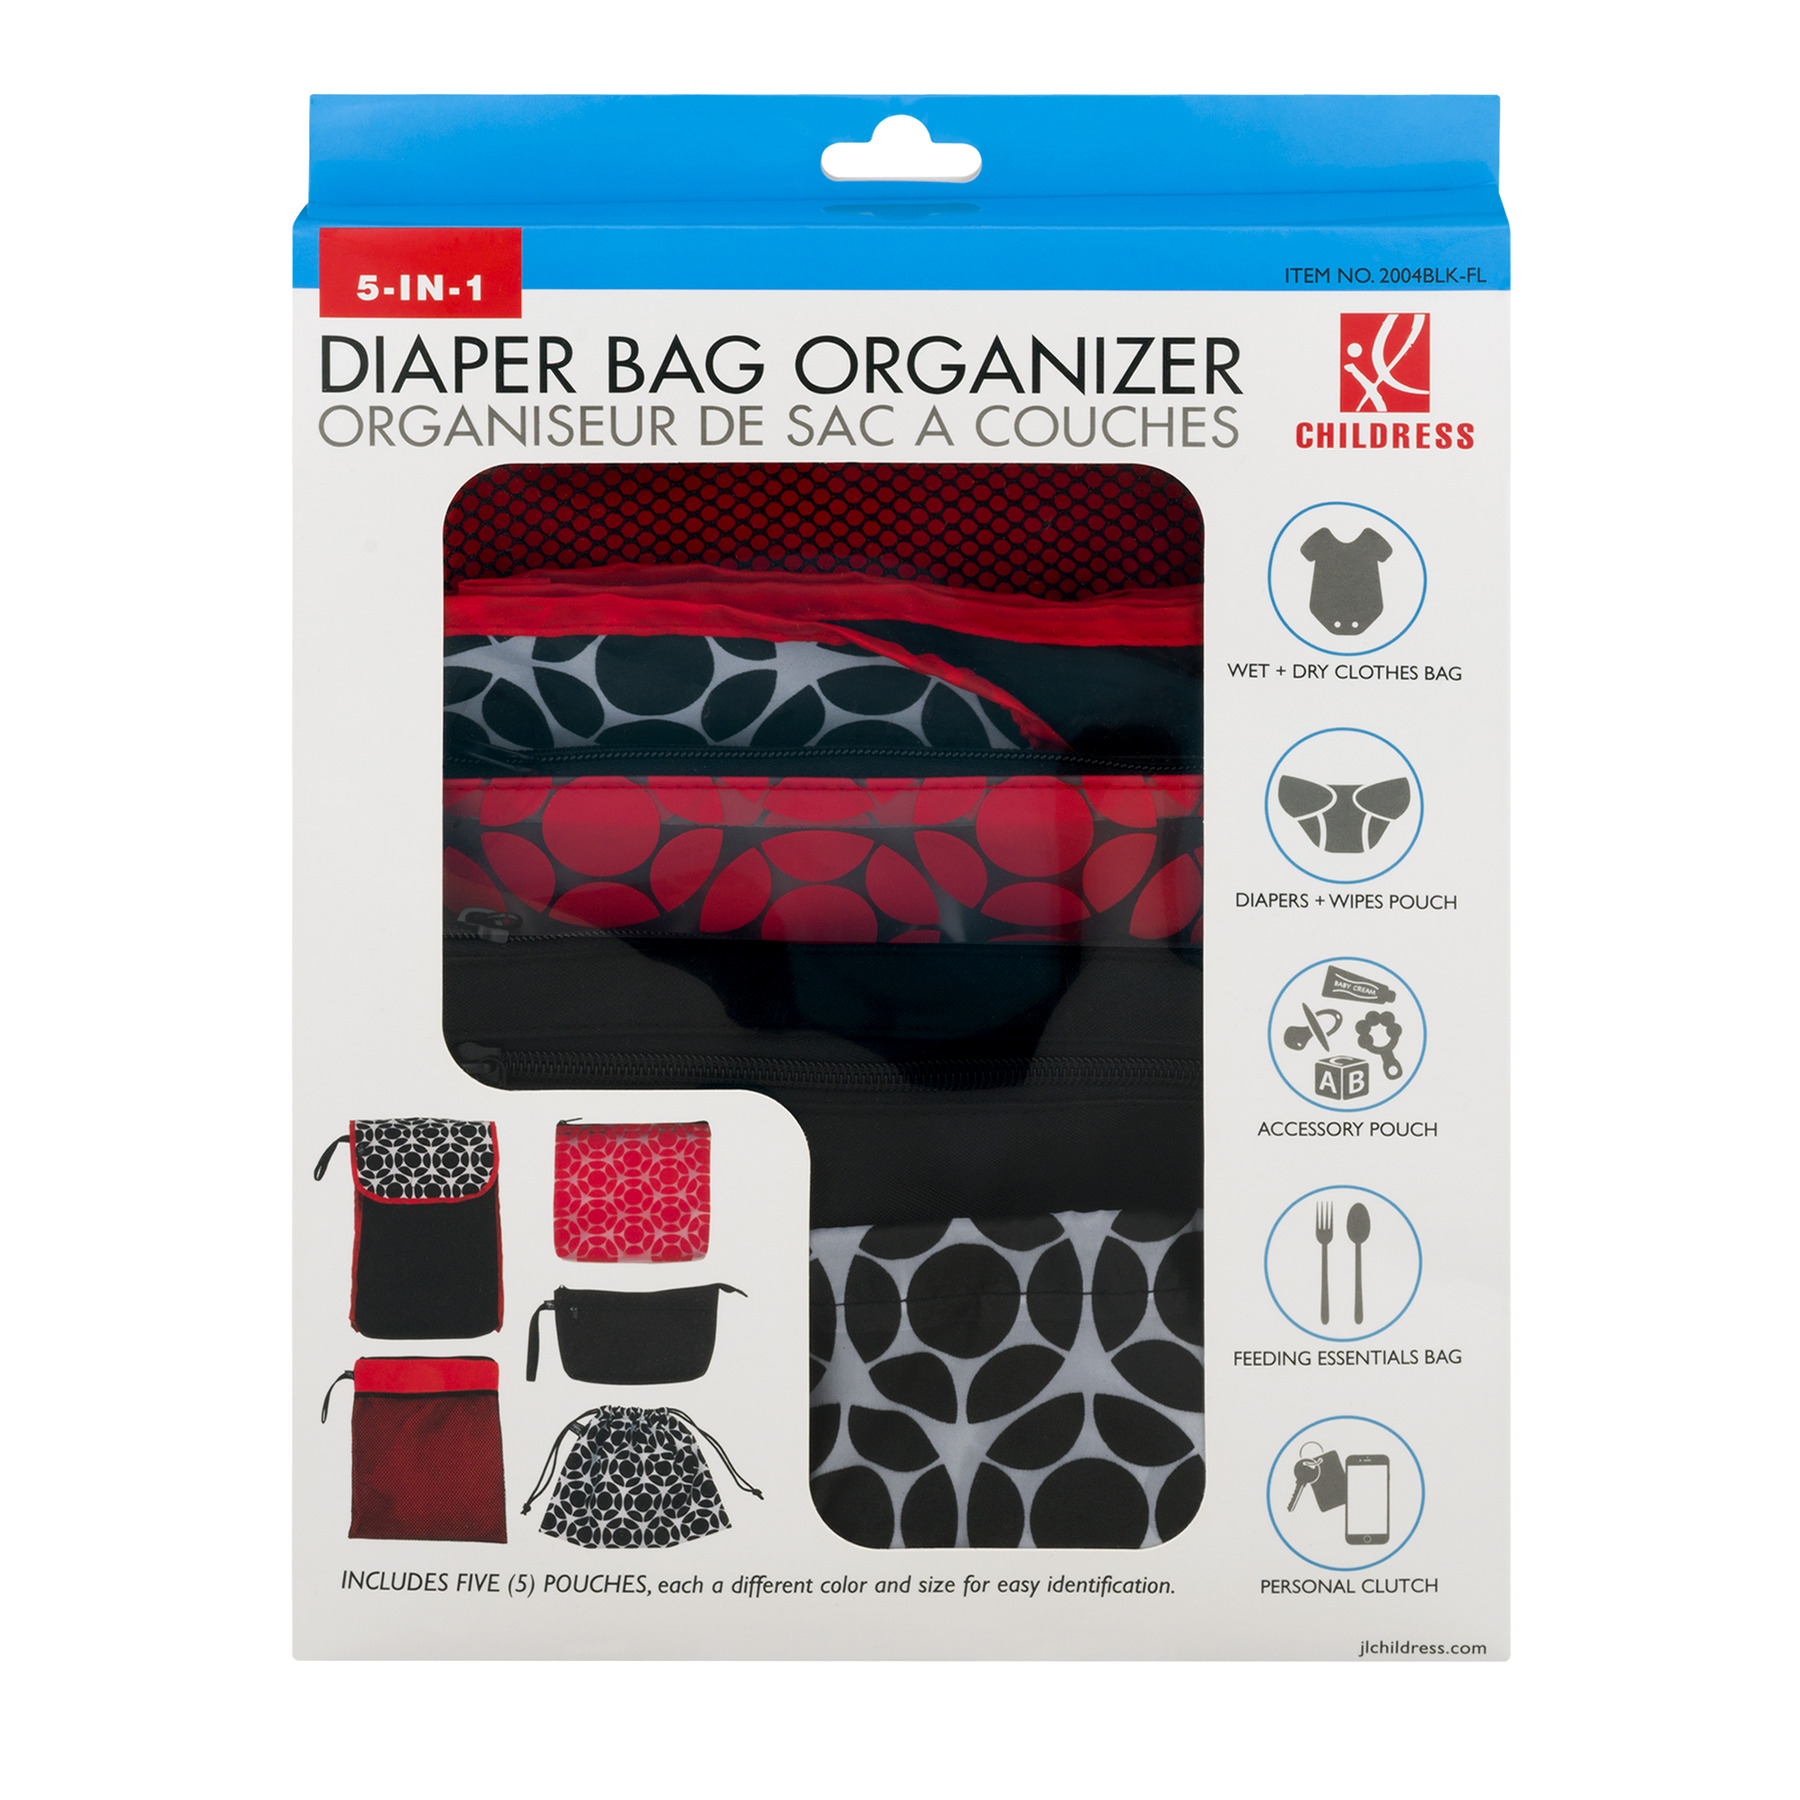 Childress 5-IN-1 Diaper Bag Organizer, 5.0 CT